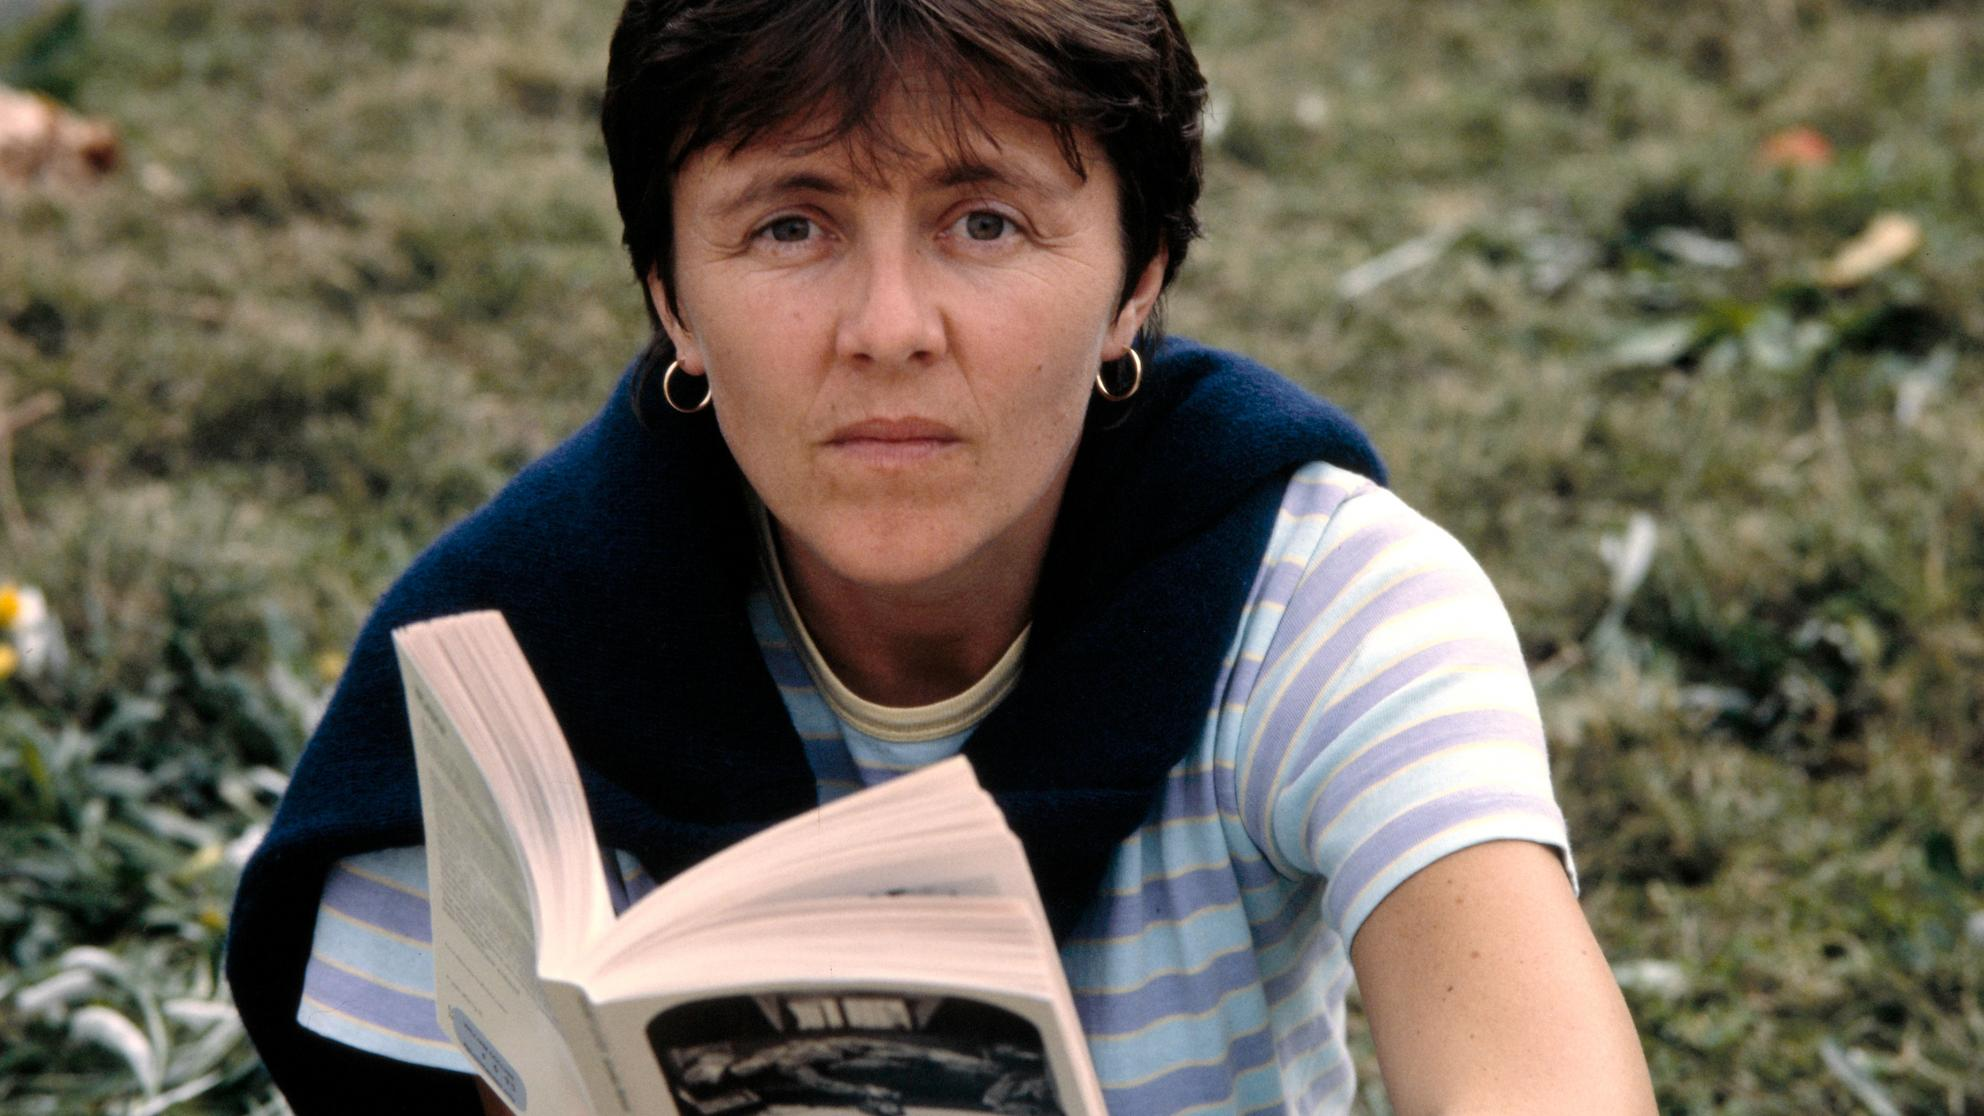 Helen Garner sitting in the ground, look at the camera and holding an open book